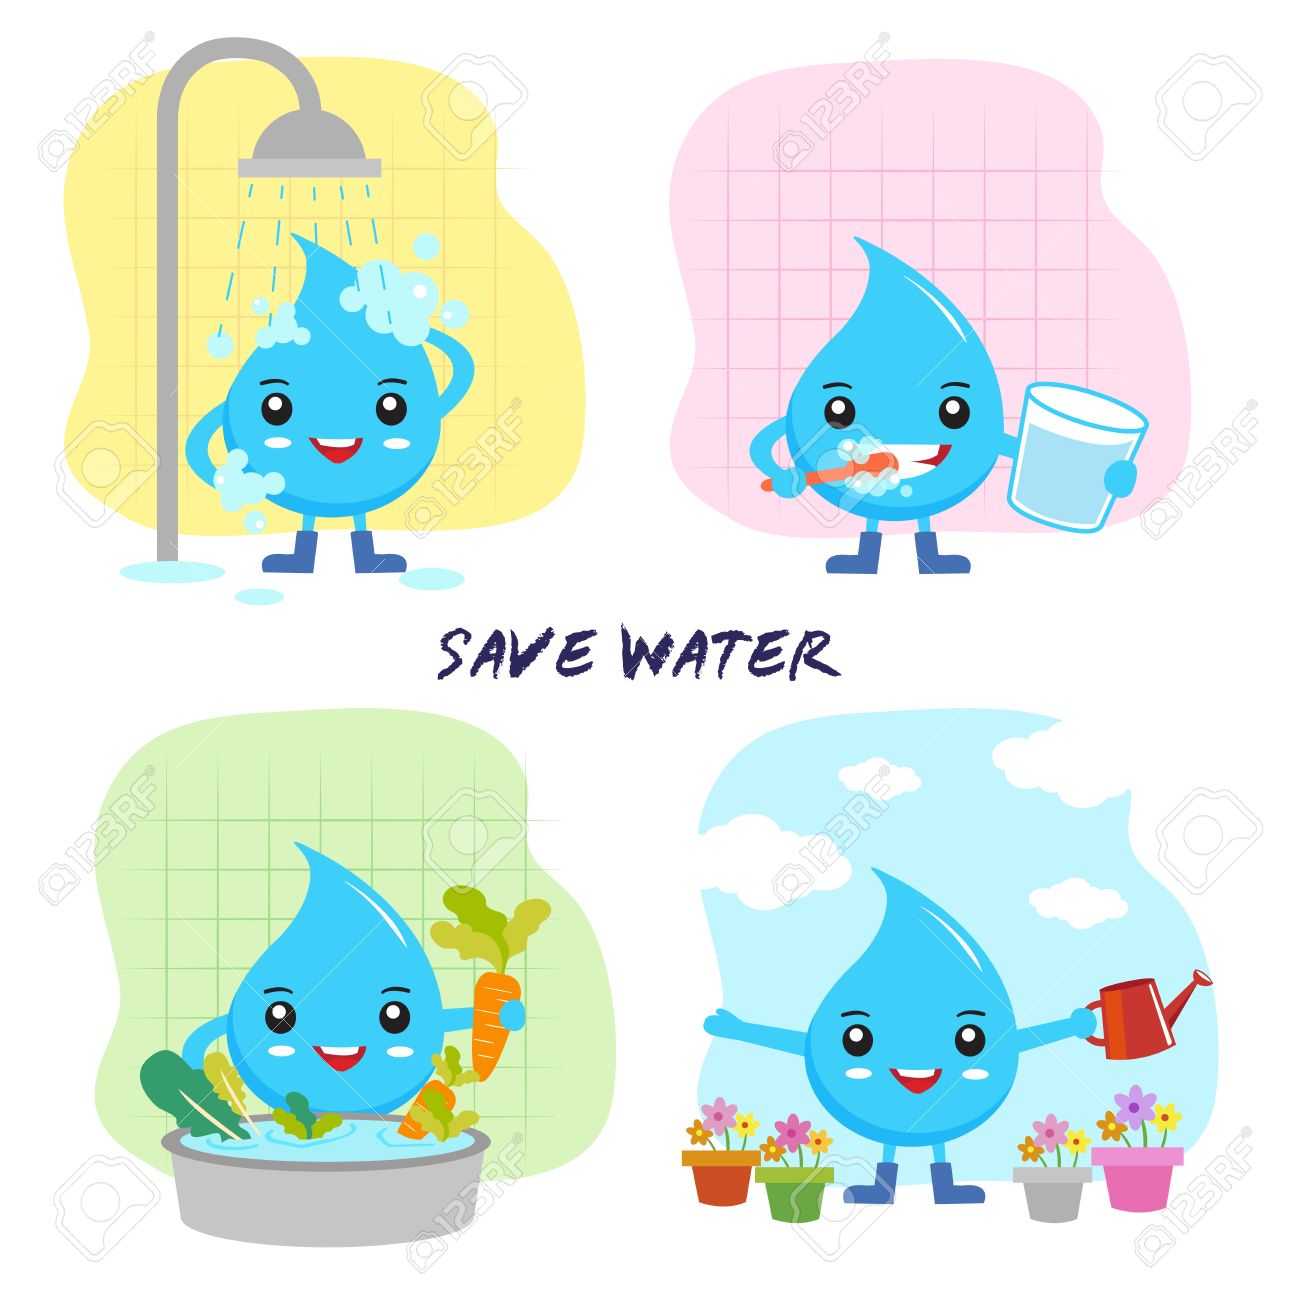 save water concept, save the world, cartoon water drops character - 51119850